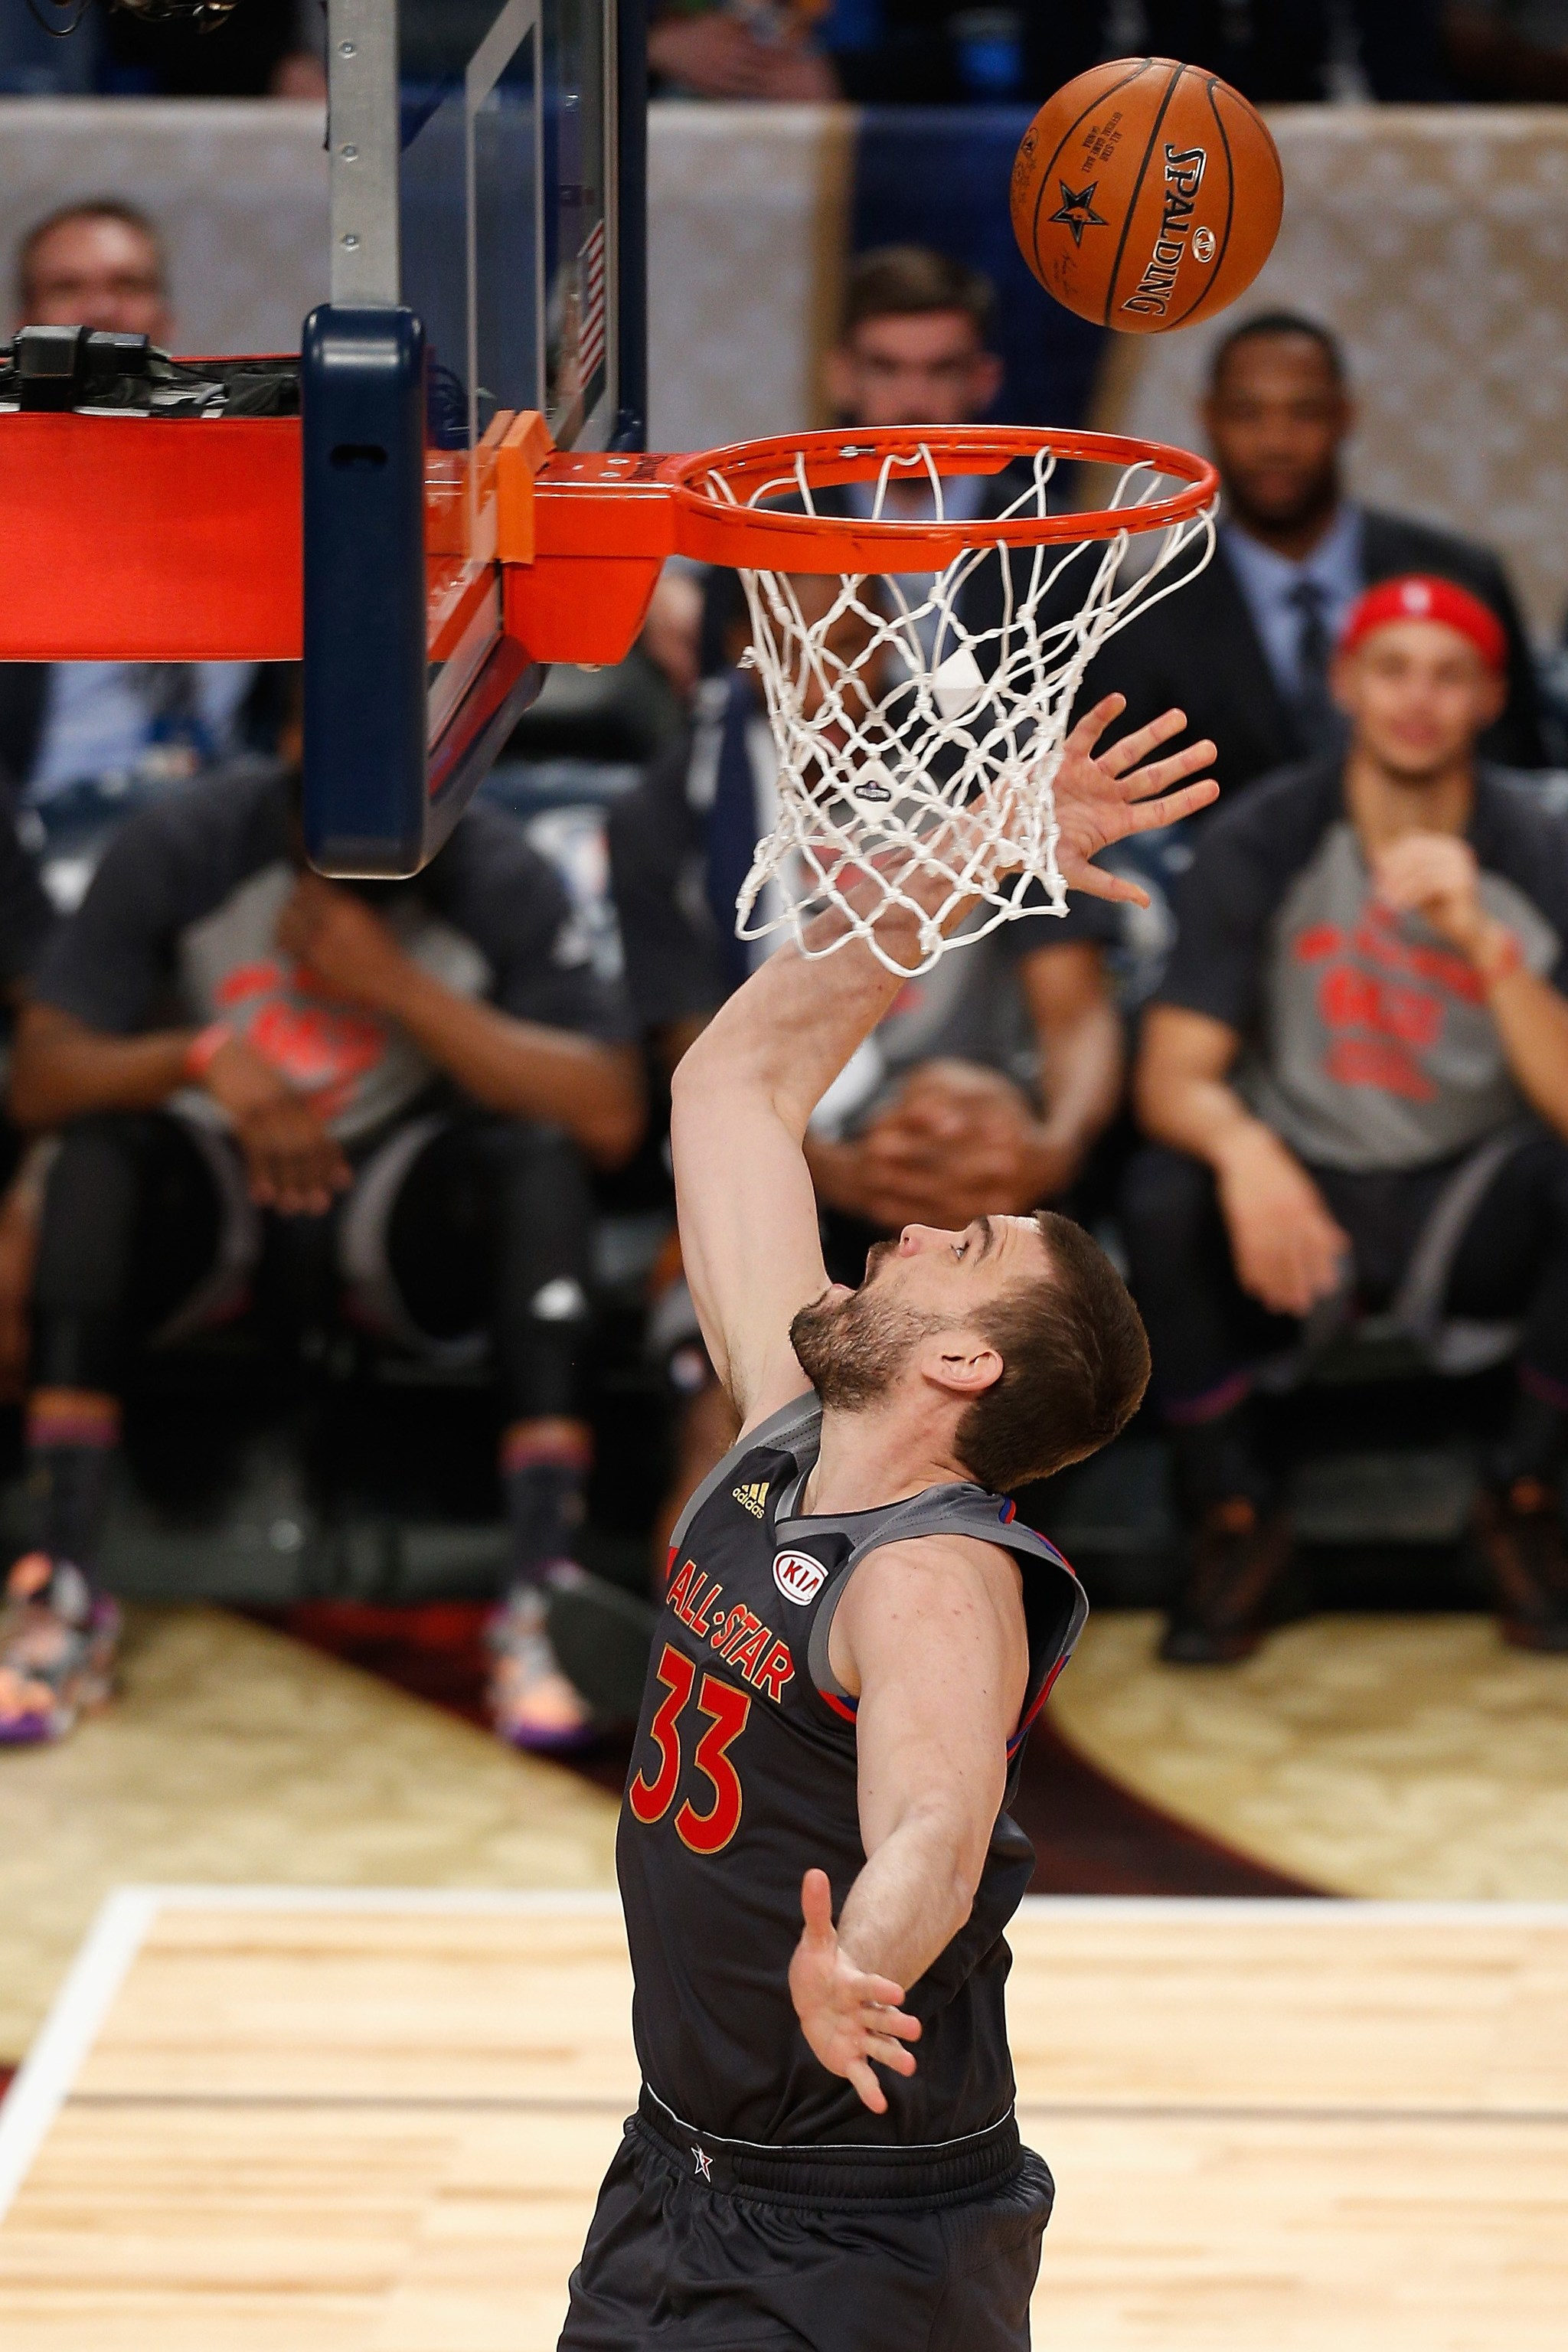 Marc Gasol anotando al contraataque en el All Star NBA